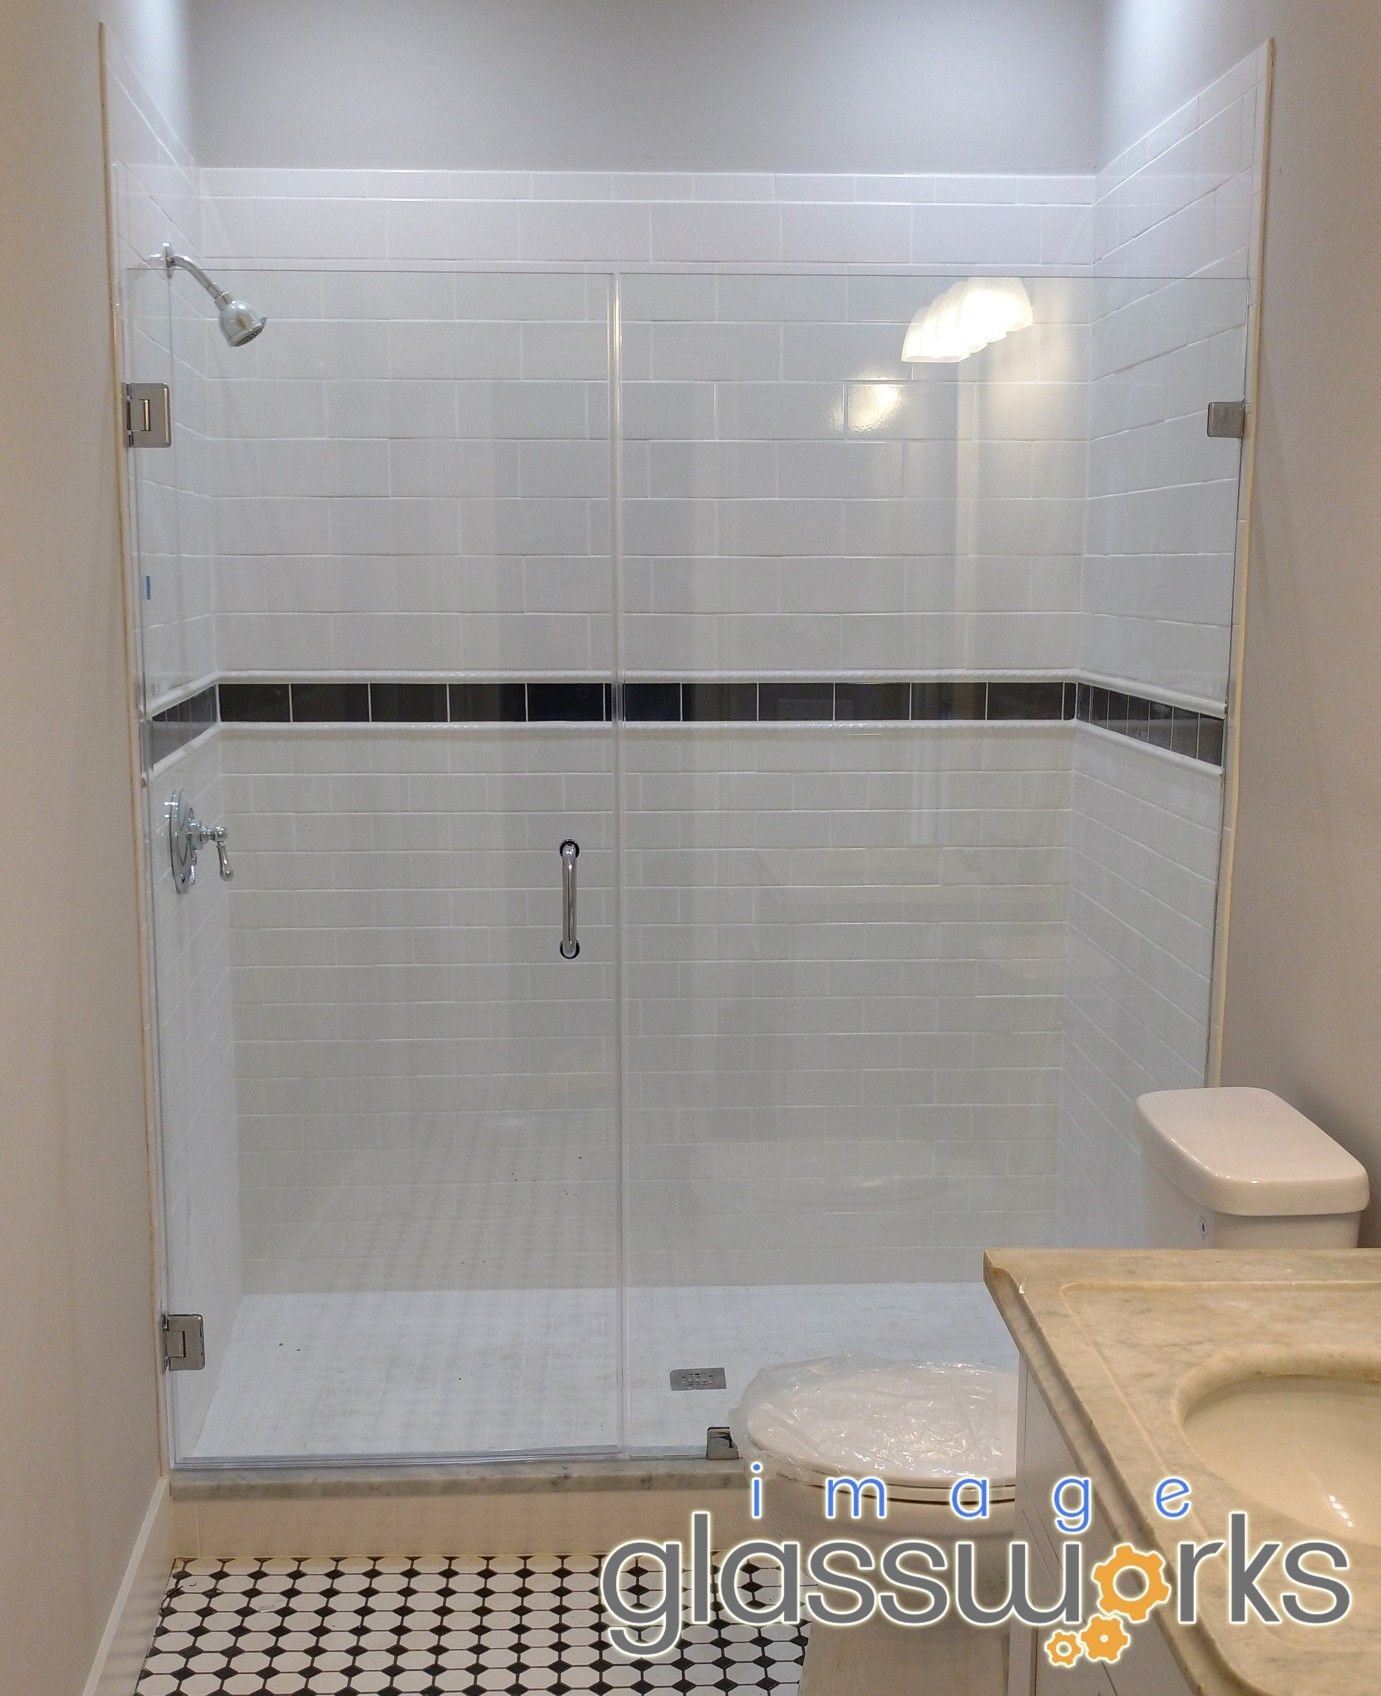 3 8 Thick Frameless Shower Door And Panel With Clips And Brushed